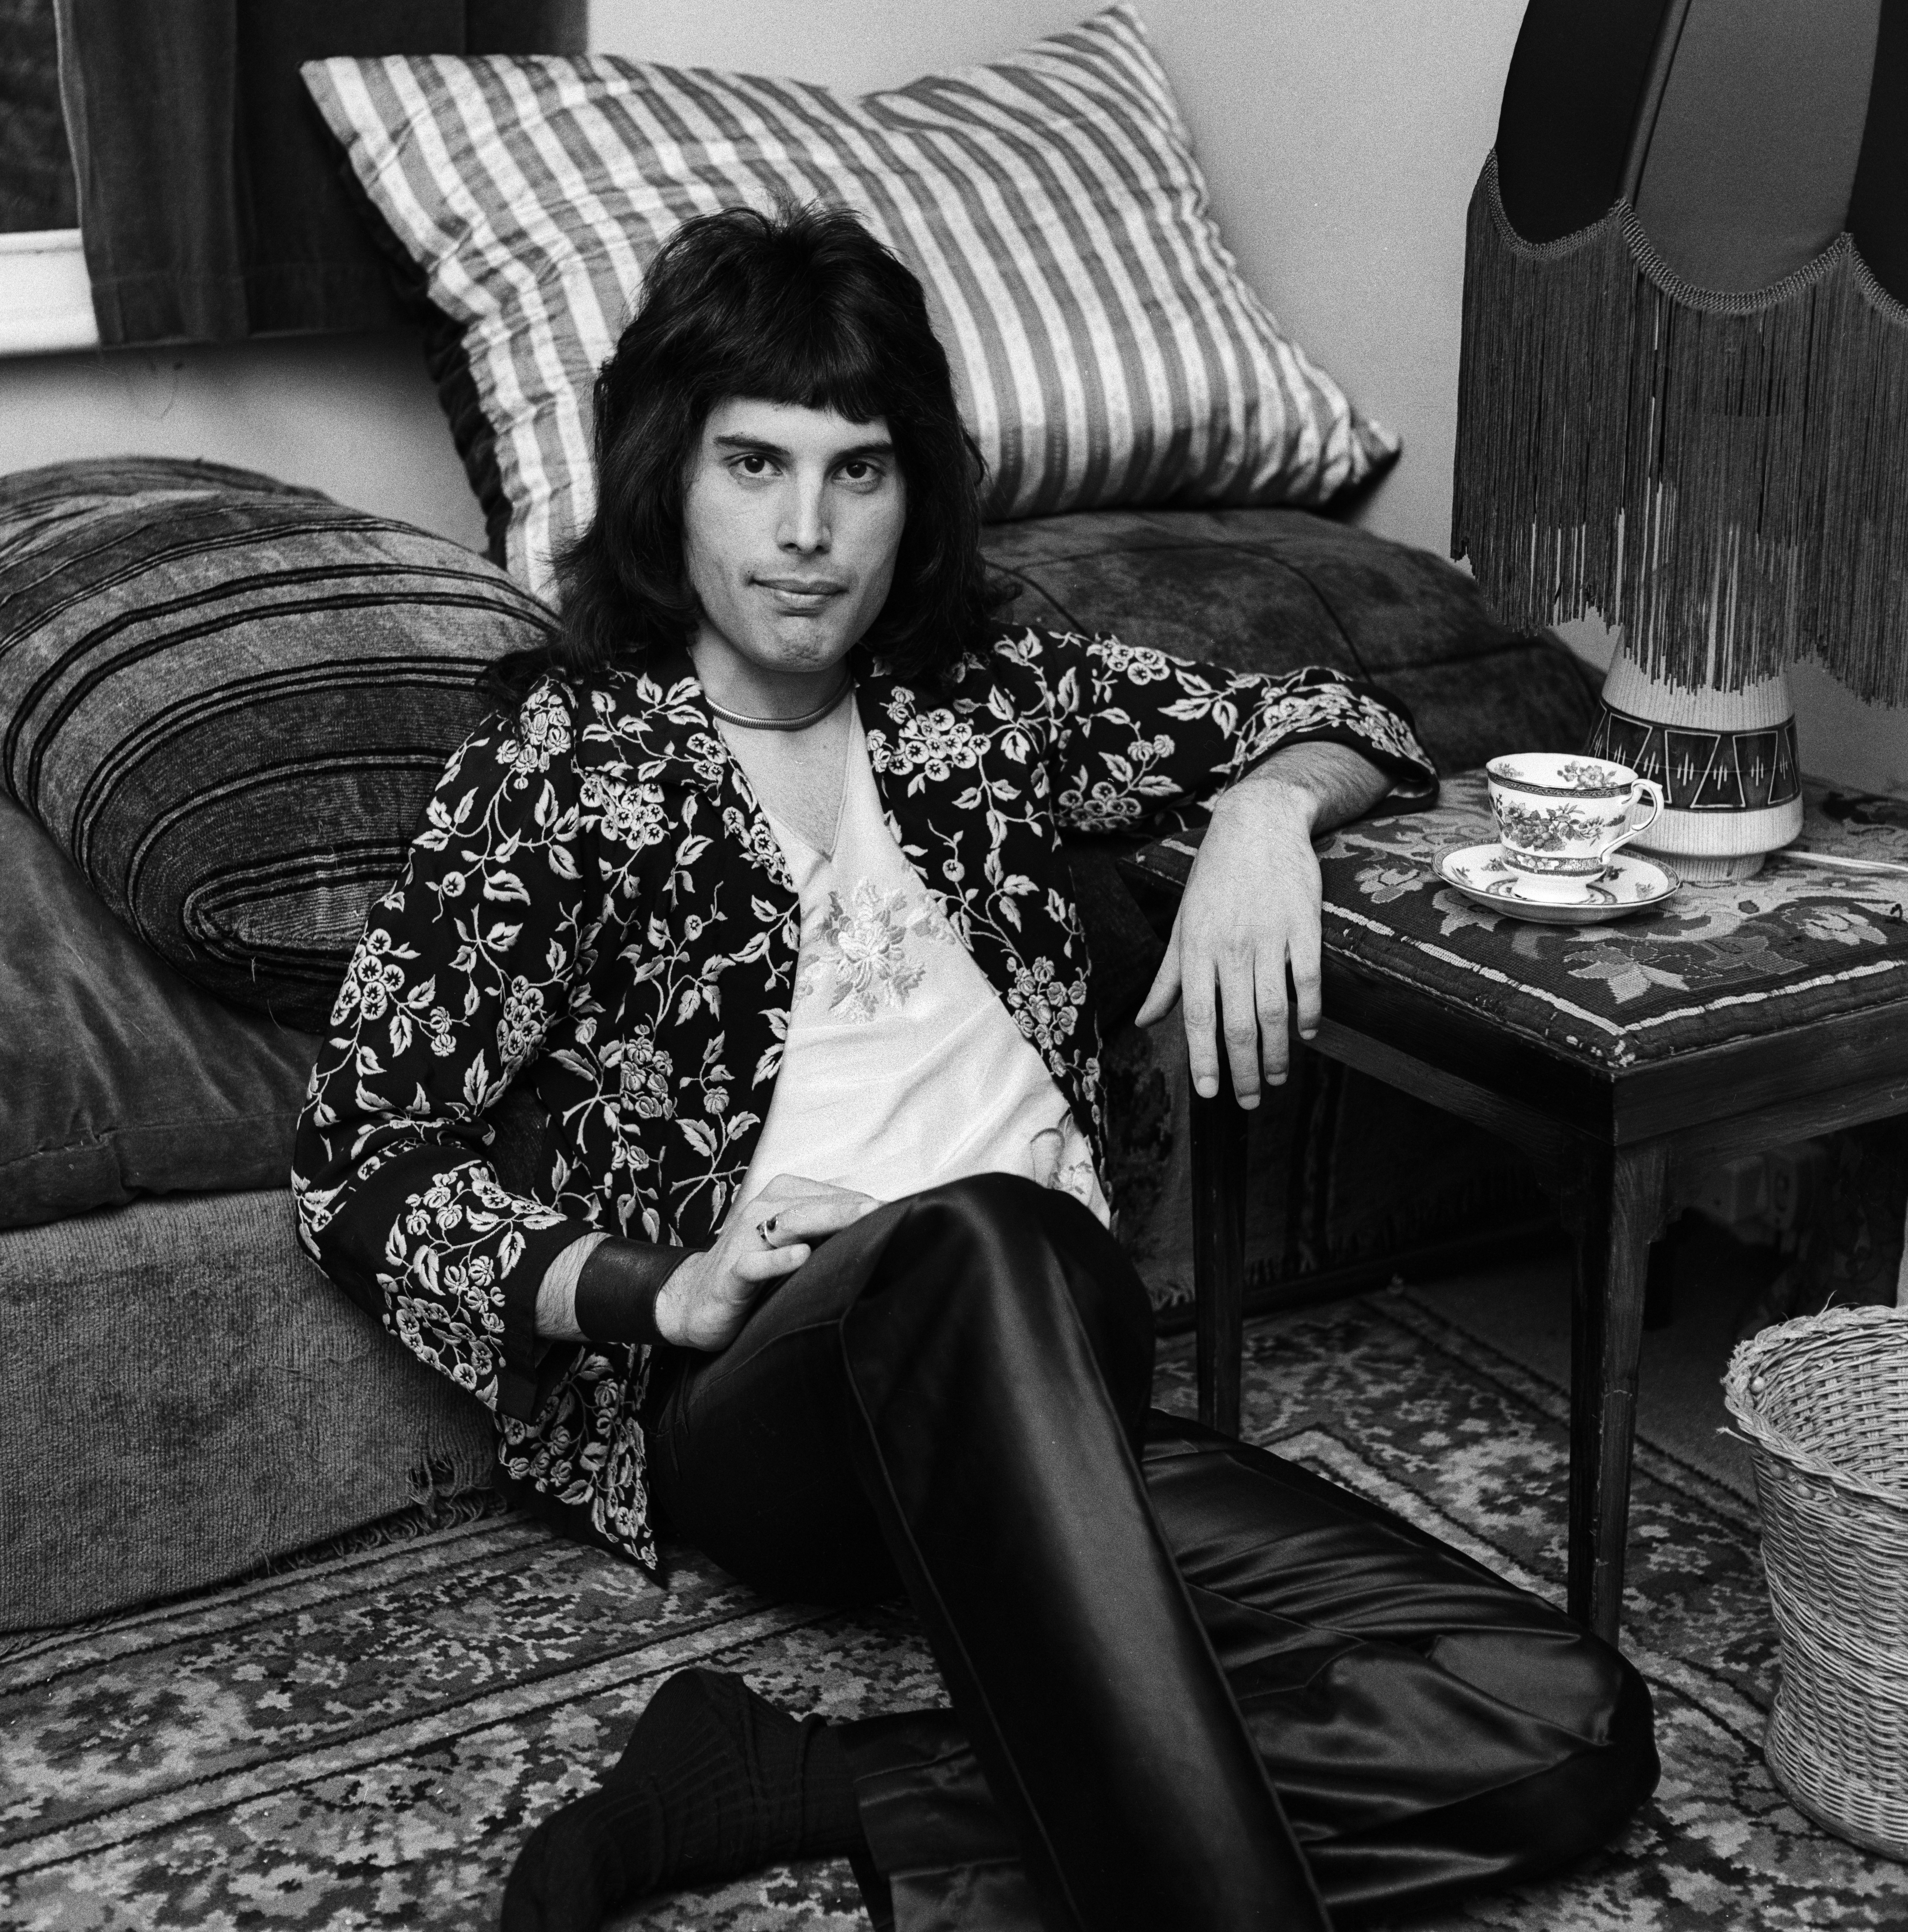 British singer and songwriter Freddie Mercury, lead vocalist of the rock band Queen. August, 1973. | Photo: GettyImages